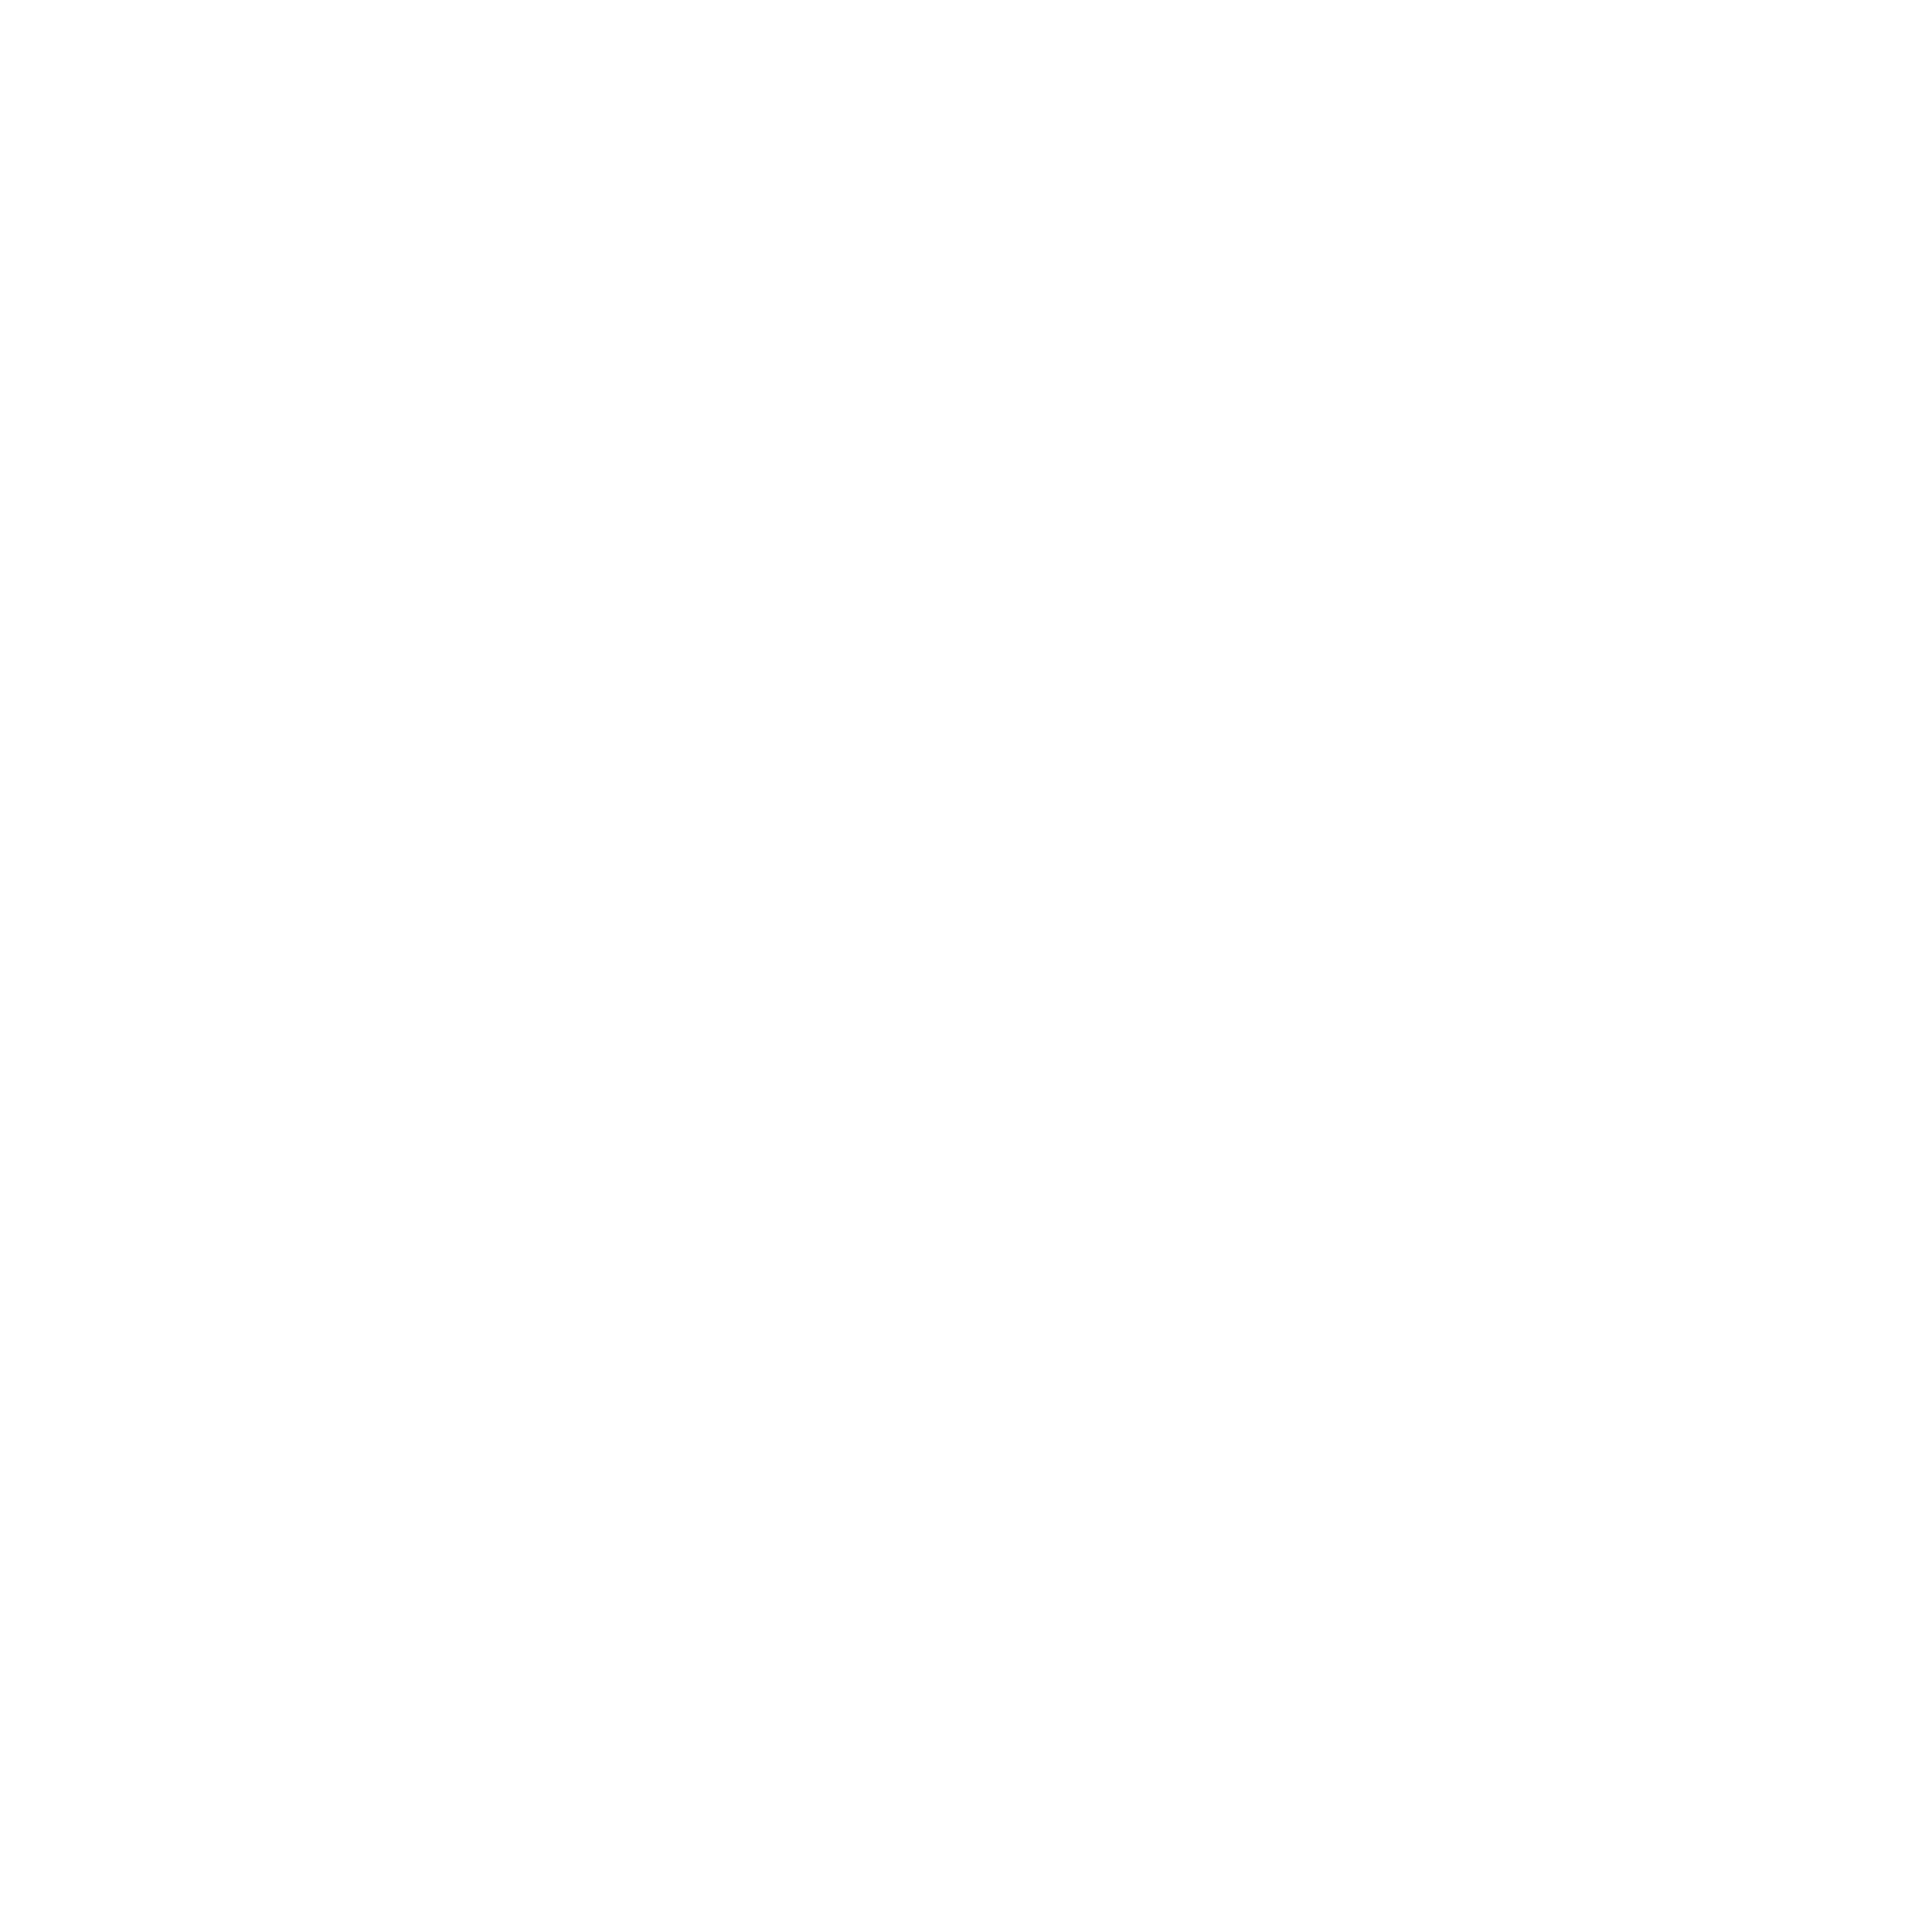 TAIR AUTHORIZED DEALER